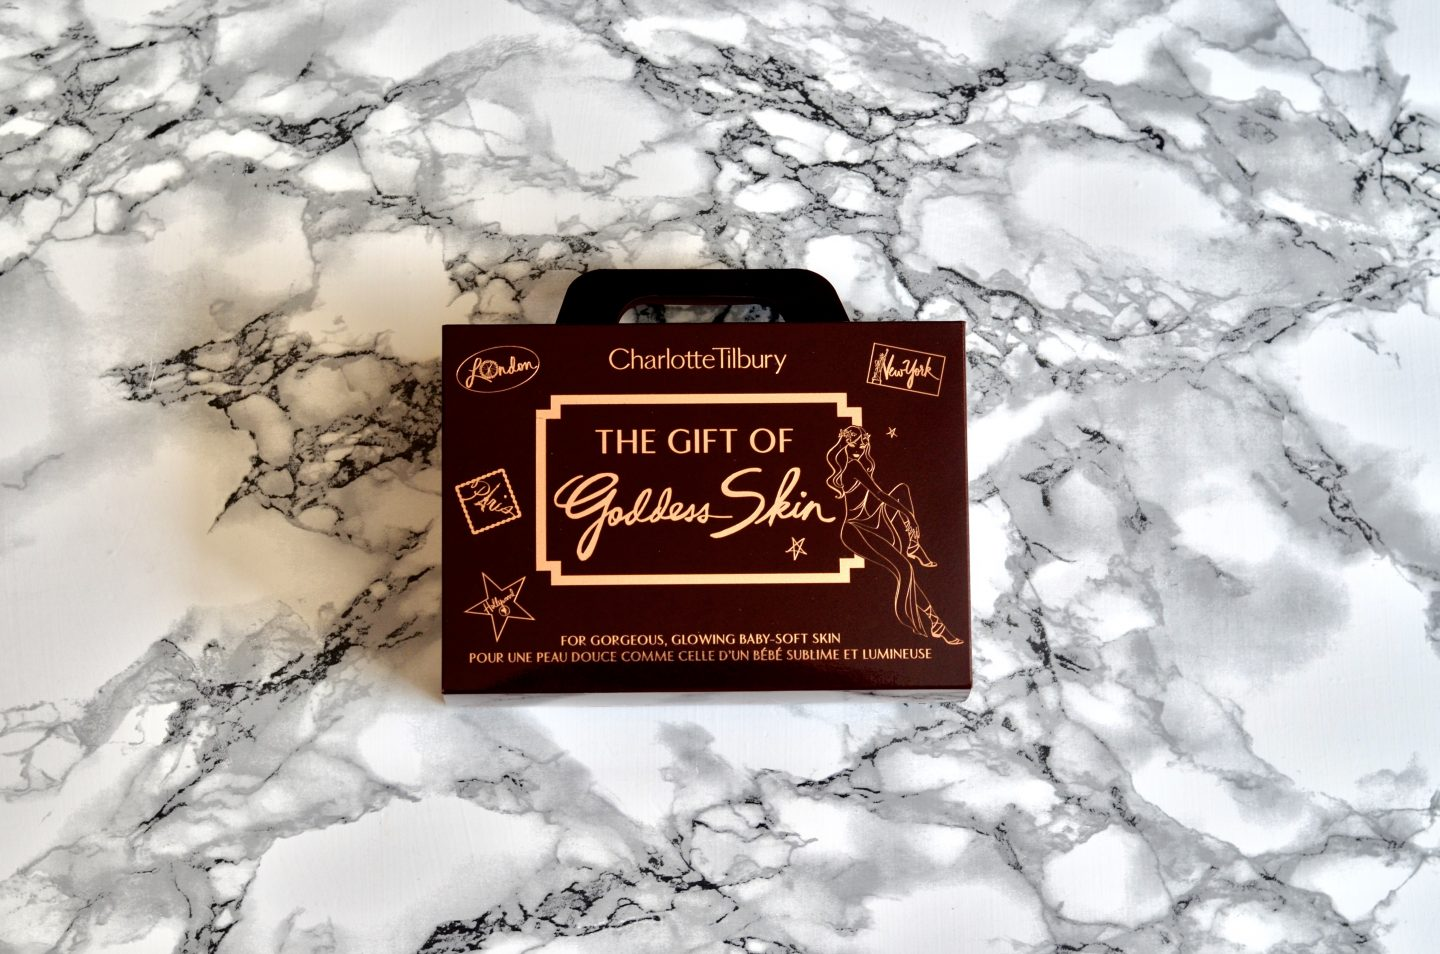 CHARLOTTE TILBURY THE GIFT OF GODESS SKIN